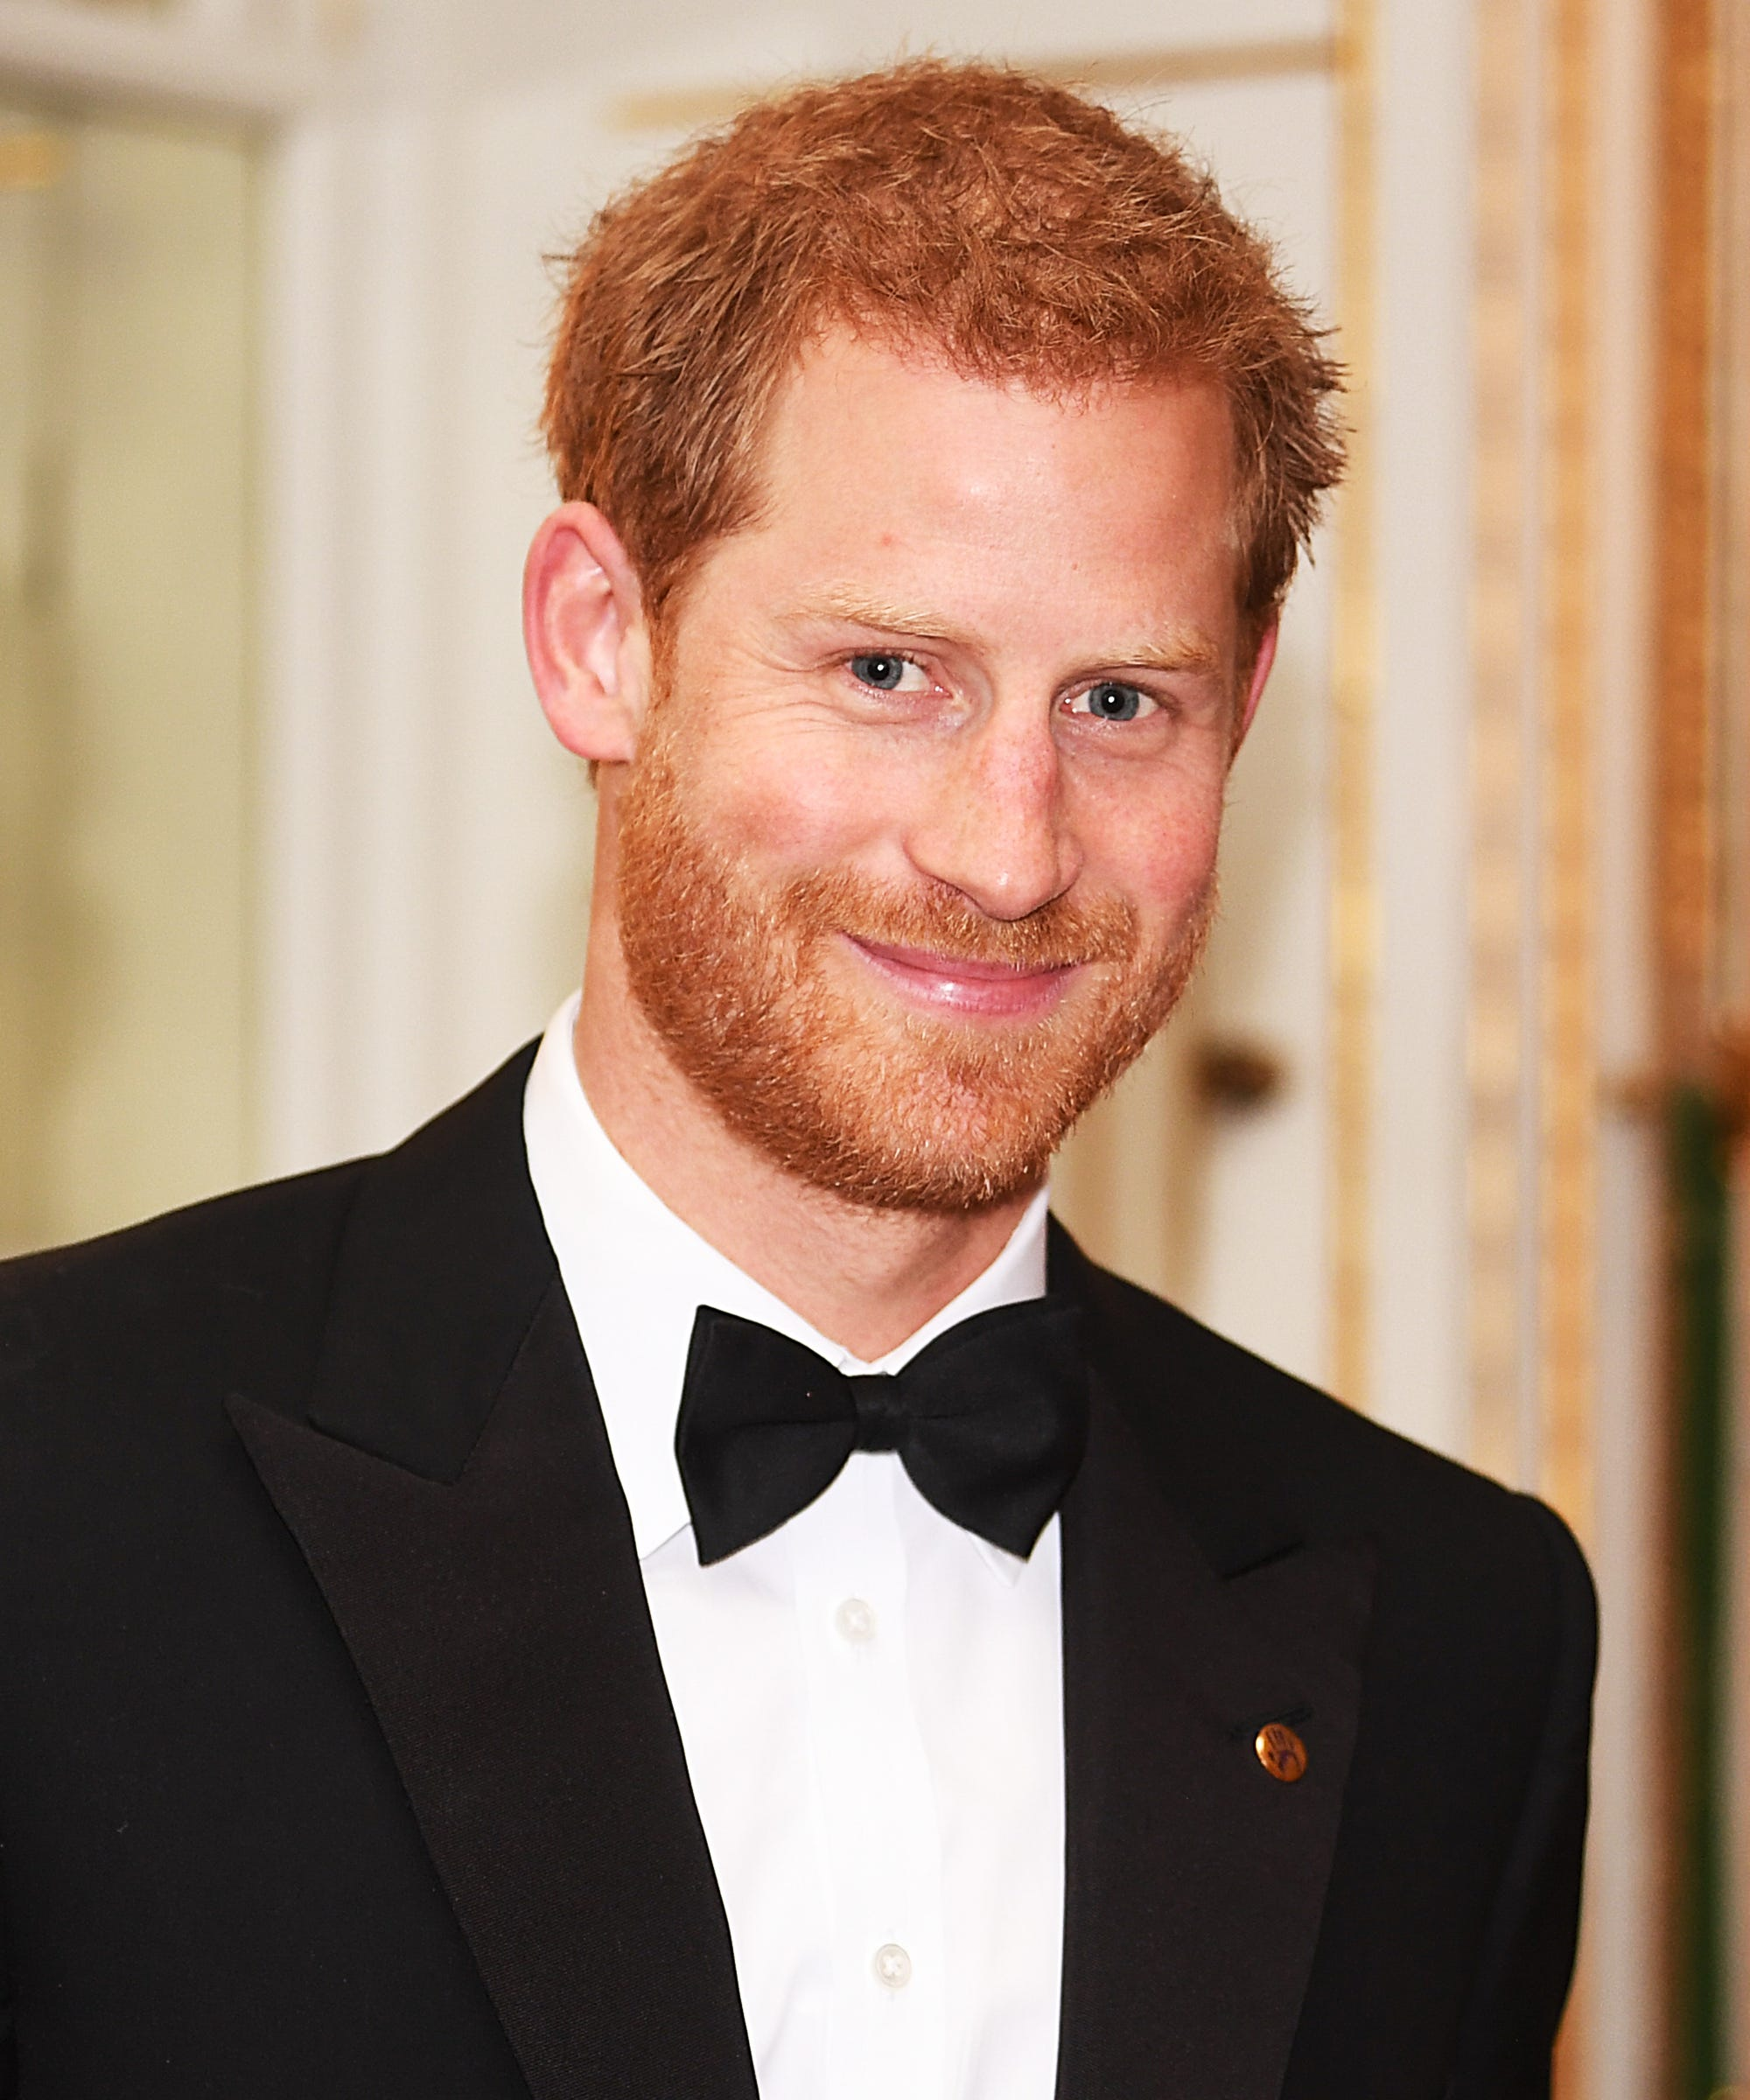 Prince Harry is continuing Princess Diana's work and taking up her campaign